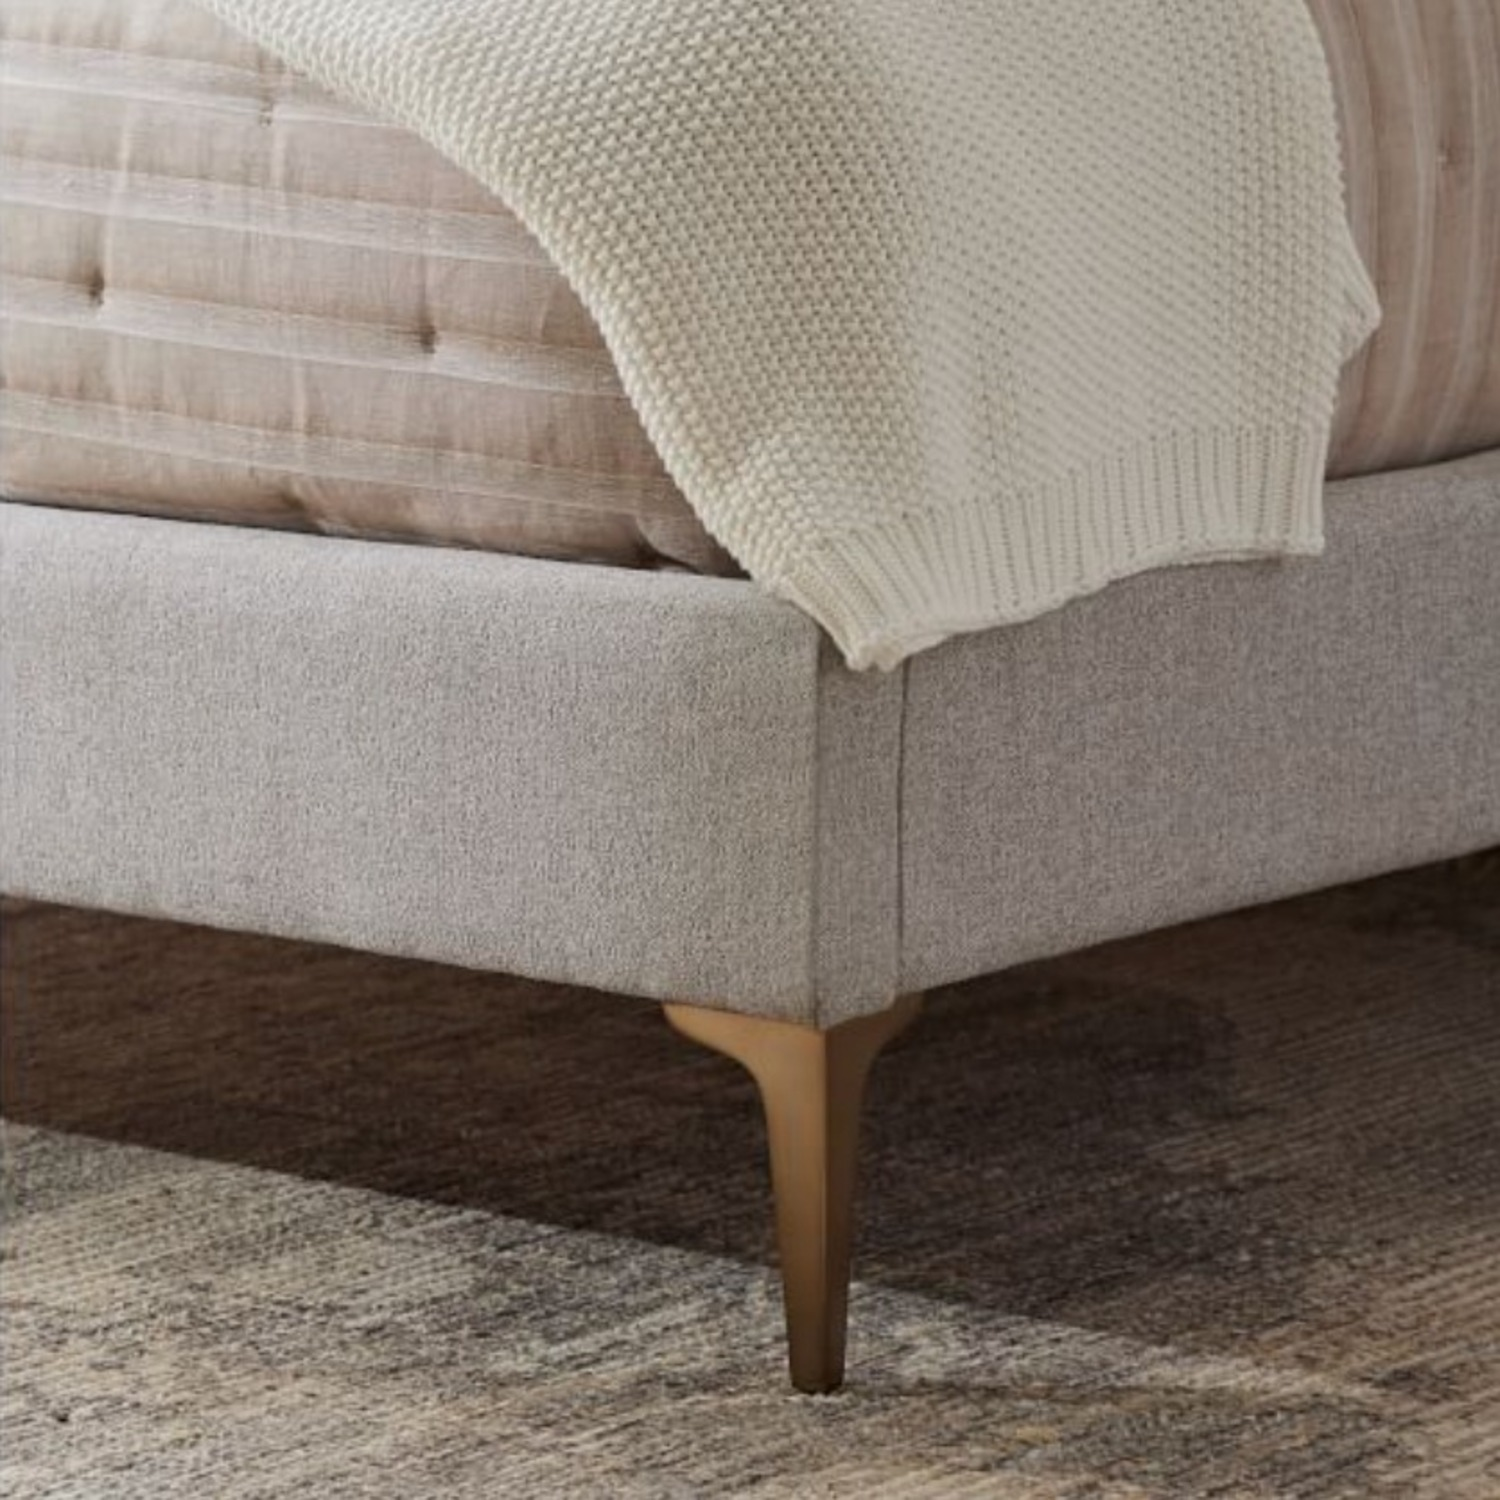 West Elm Andes Full Size Bed - Metal legs - image-2